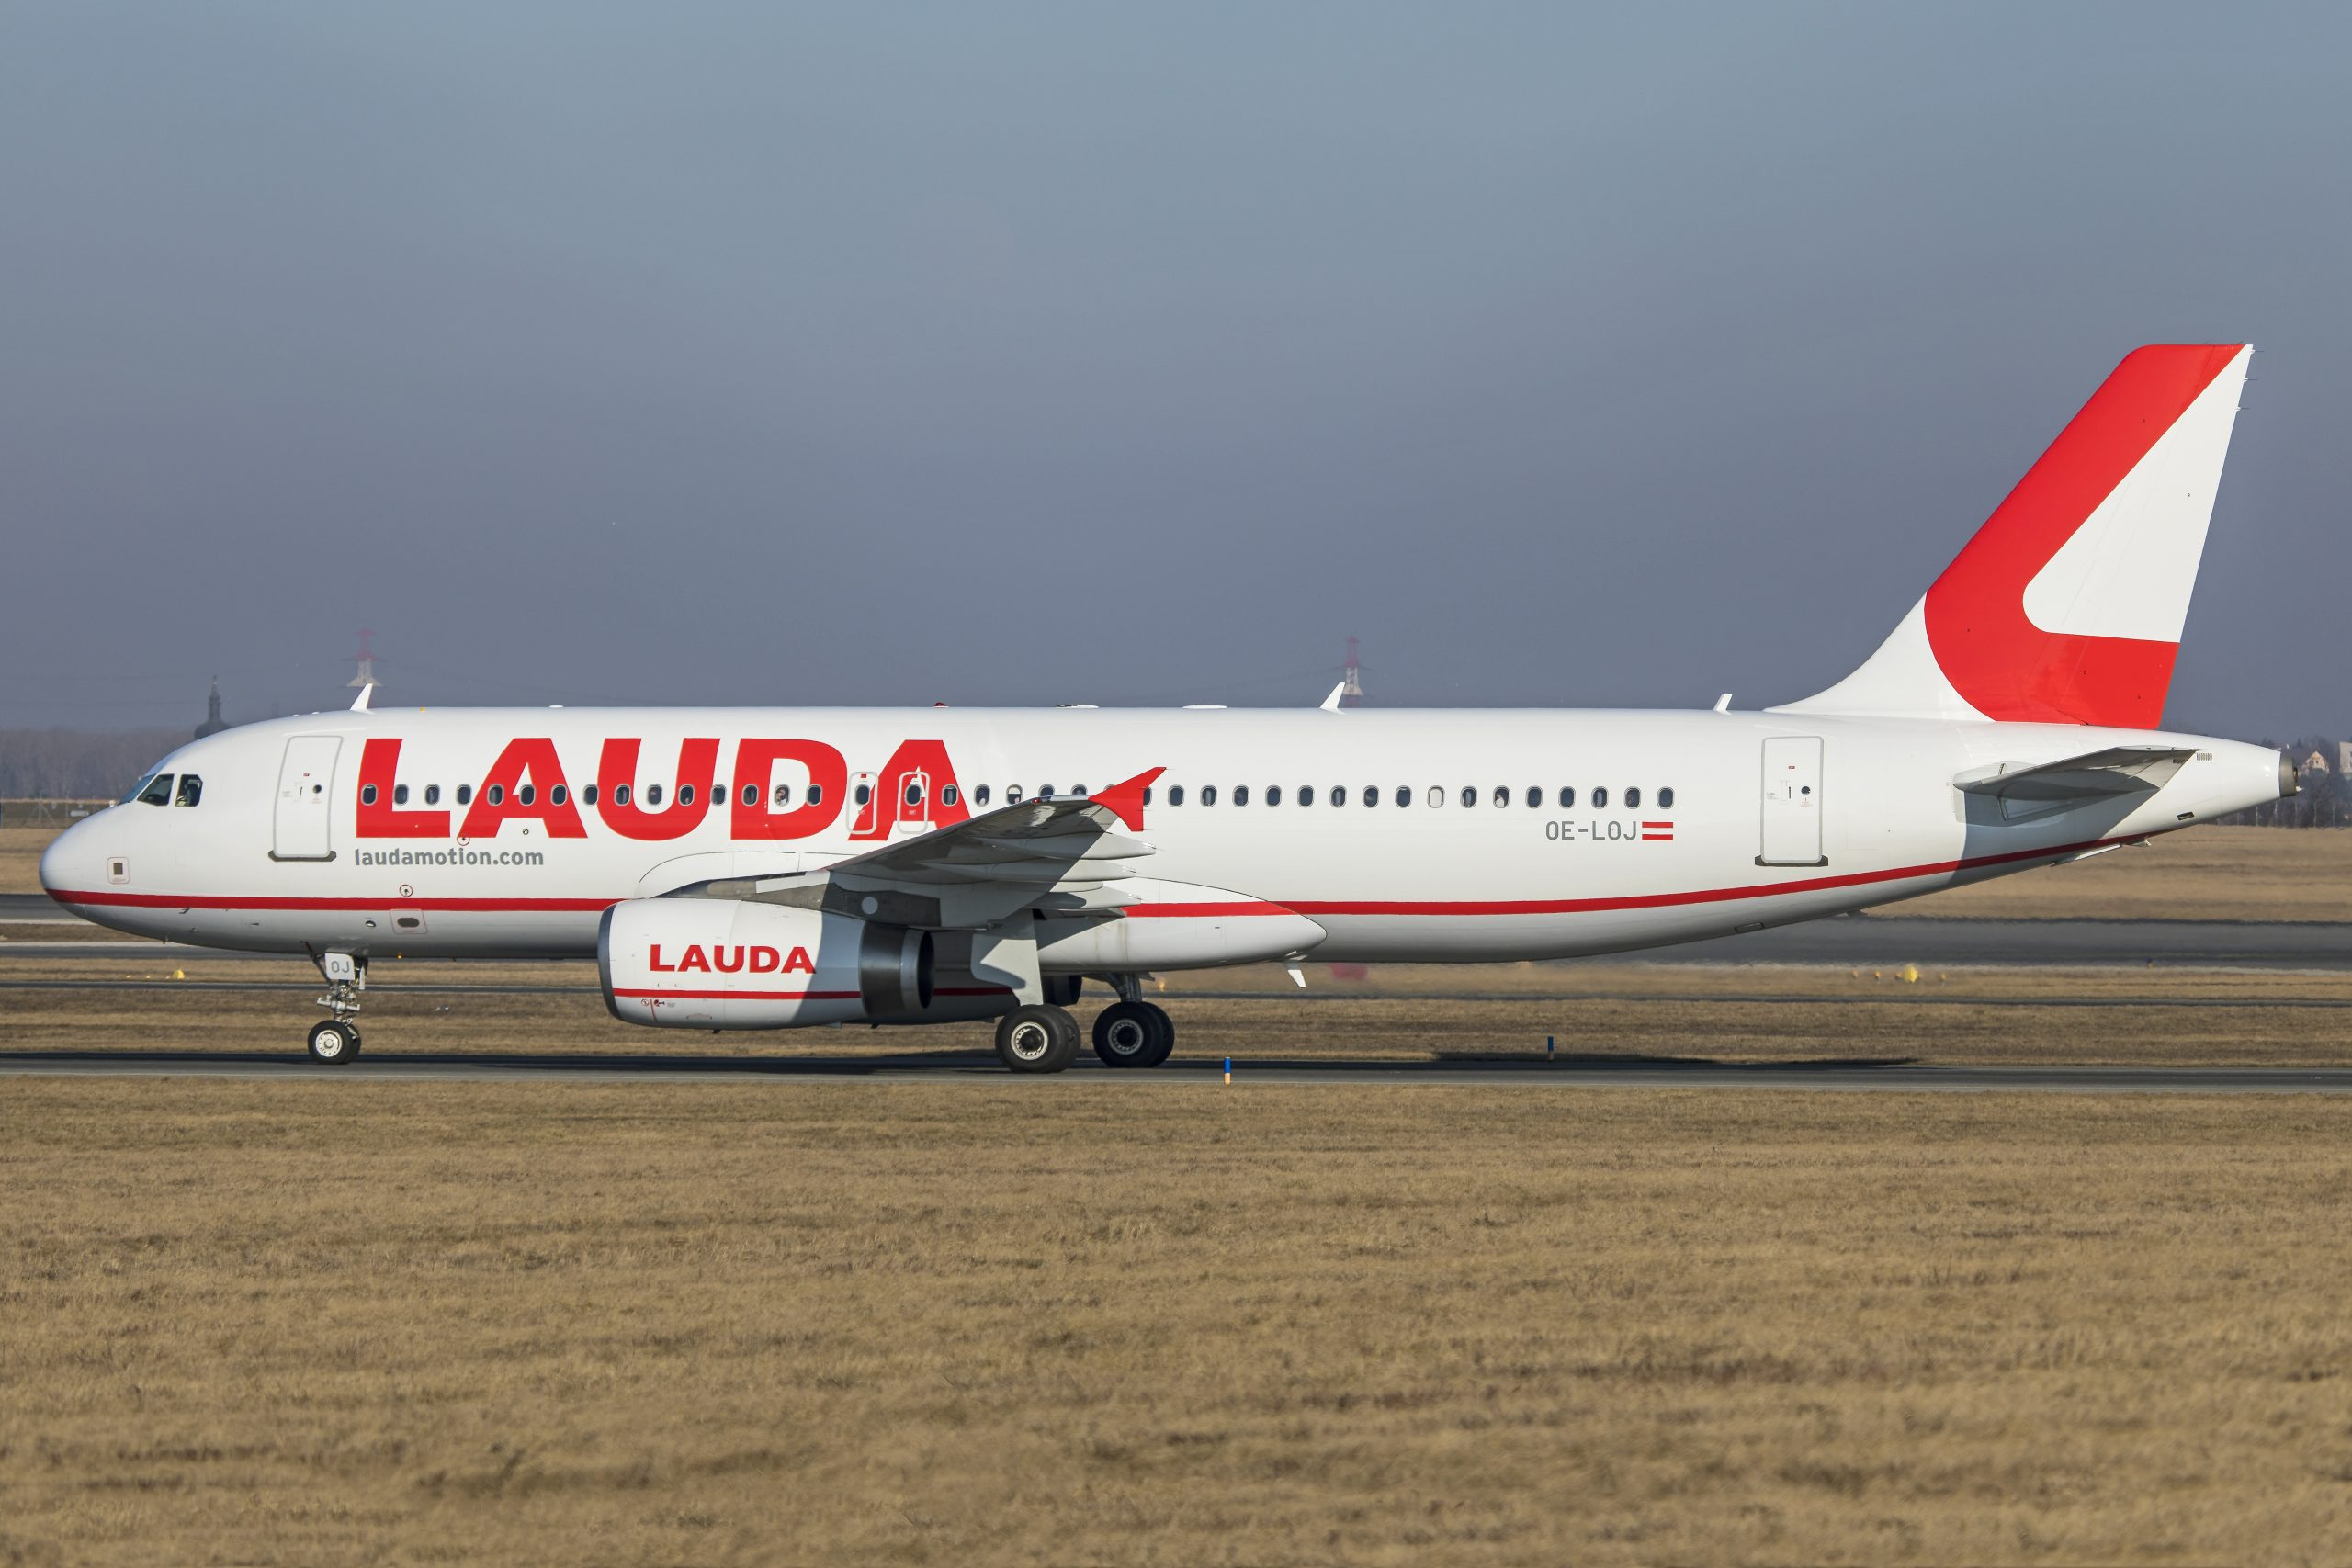 Laudiamotion to Close, Transfer Assets – AirlineGeeks.com